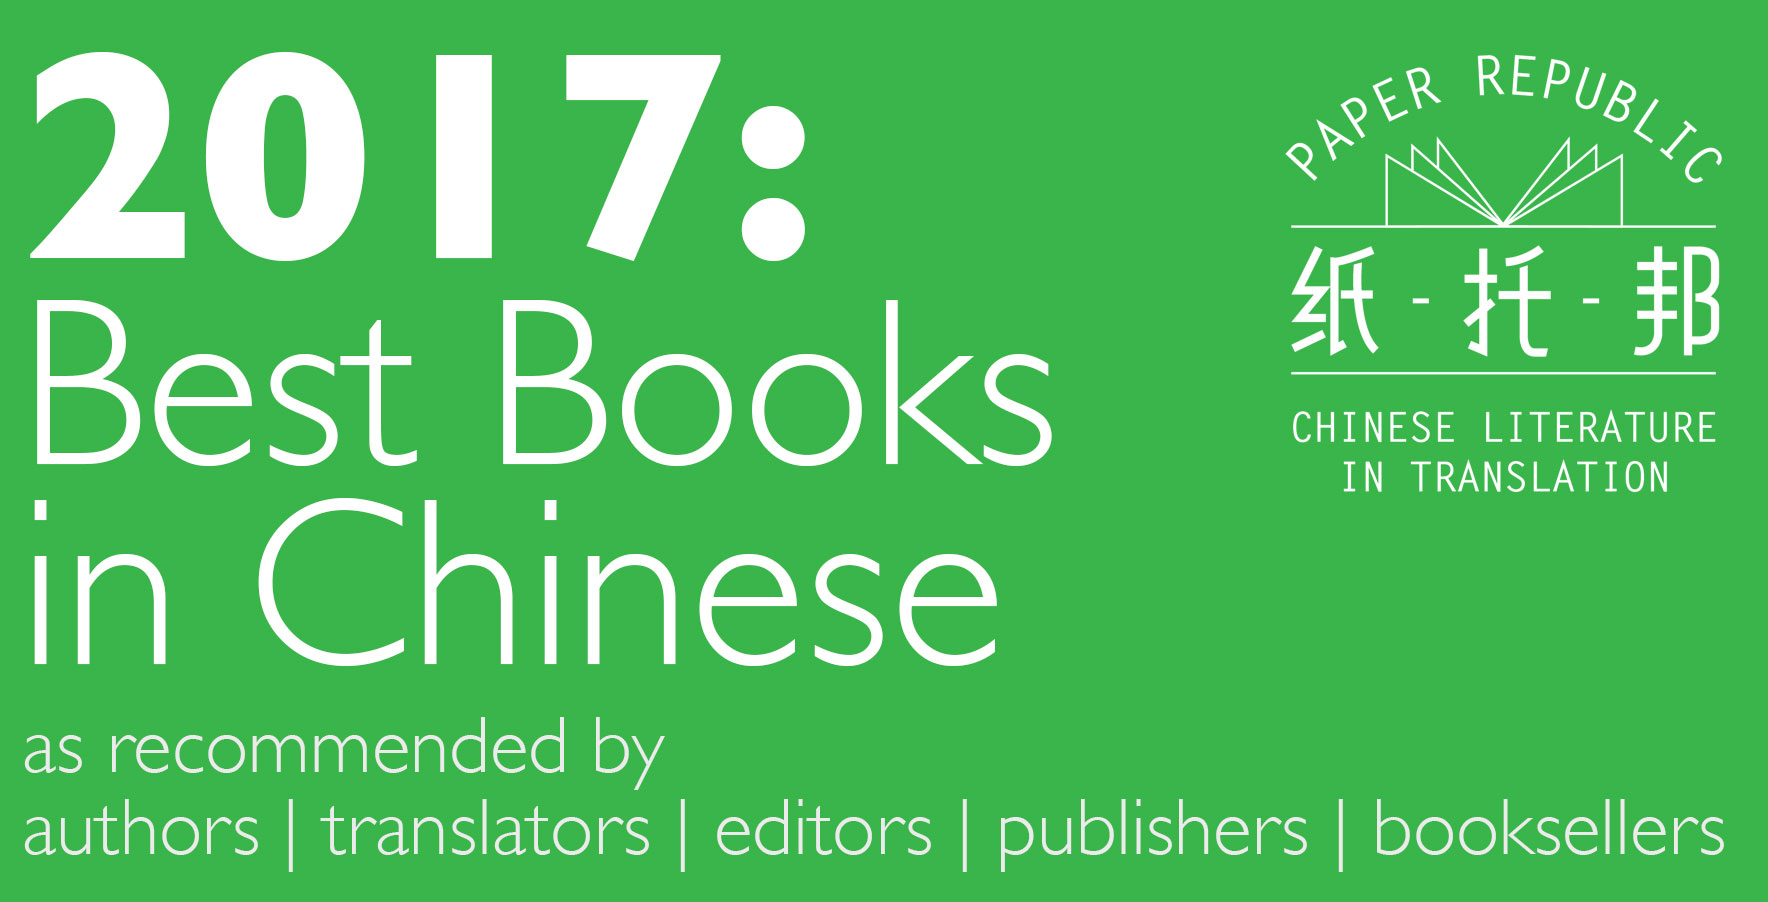 2017 Best Books In Chinese